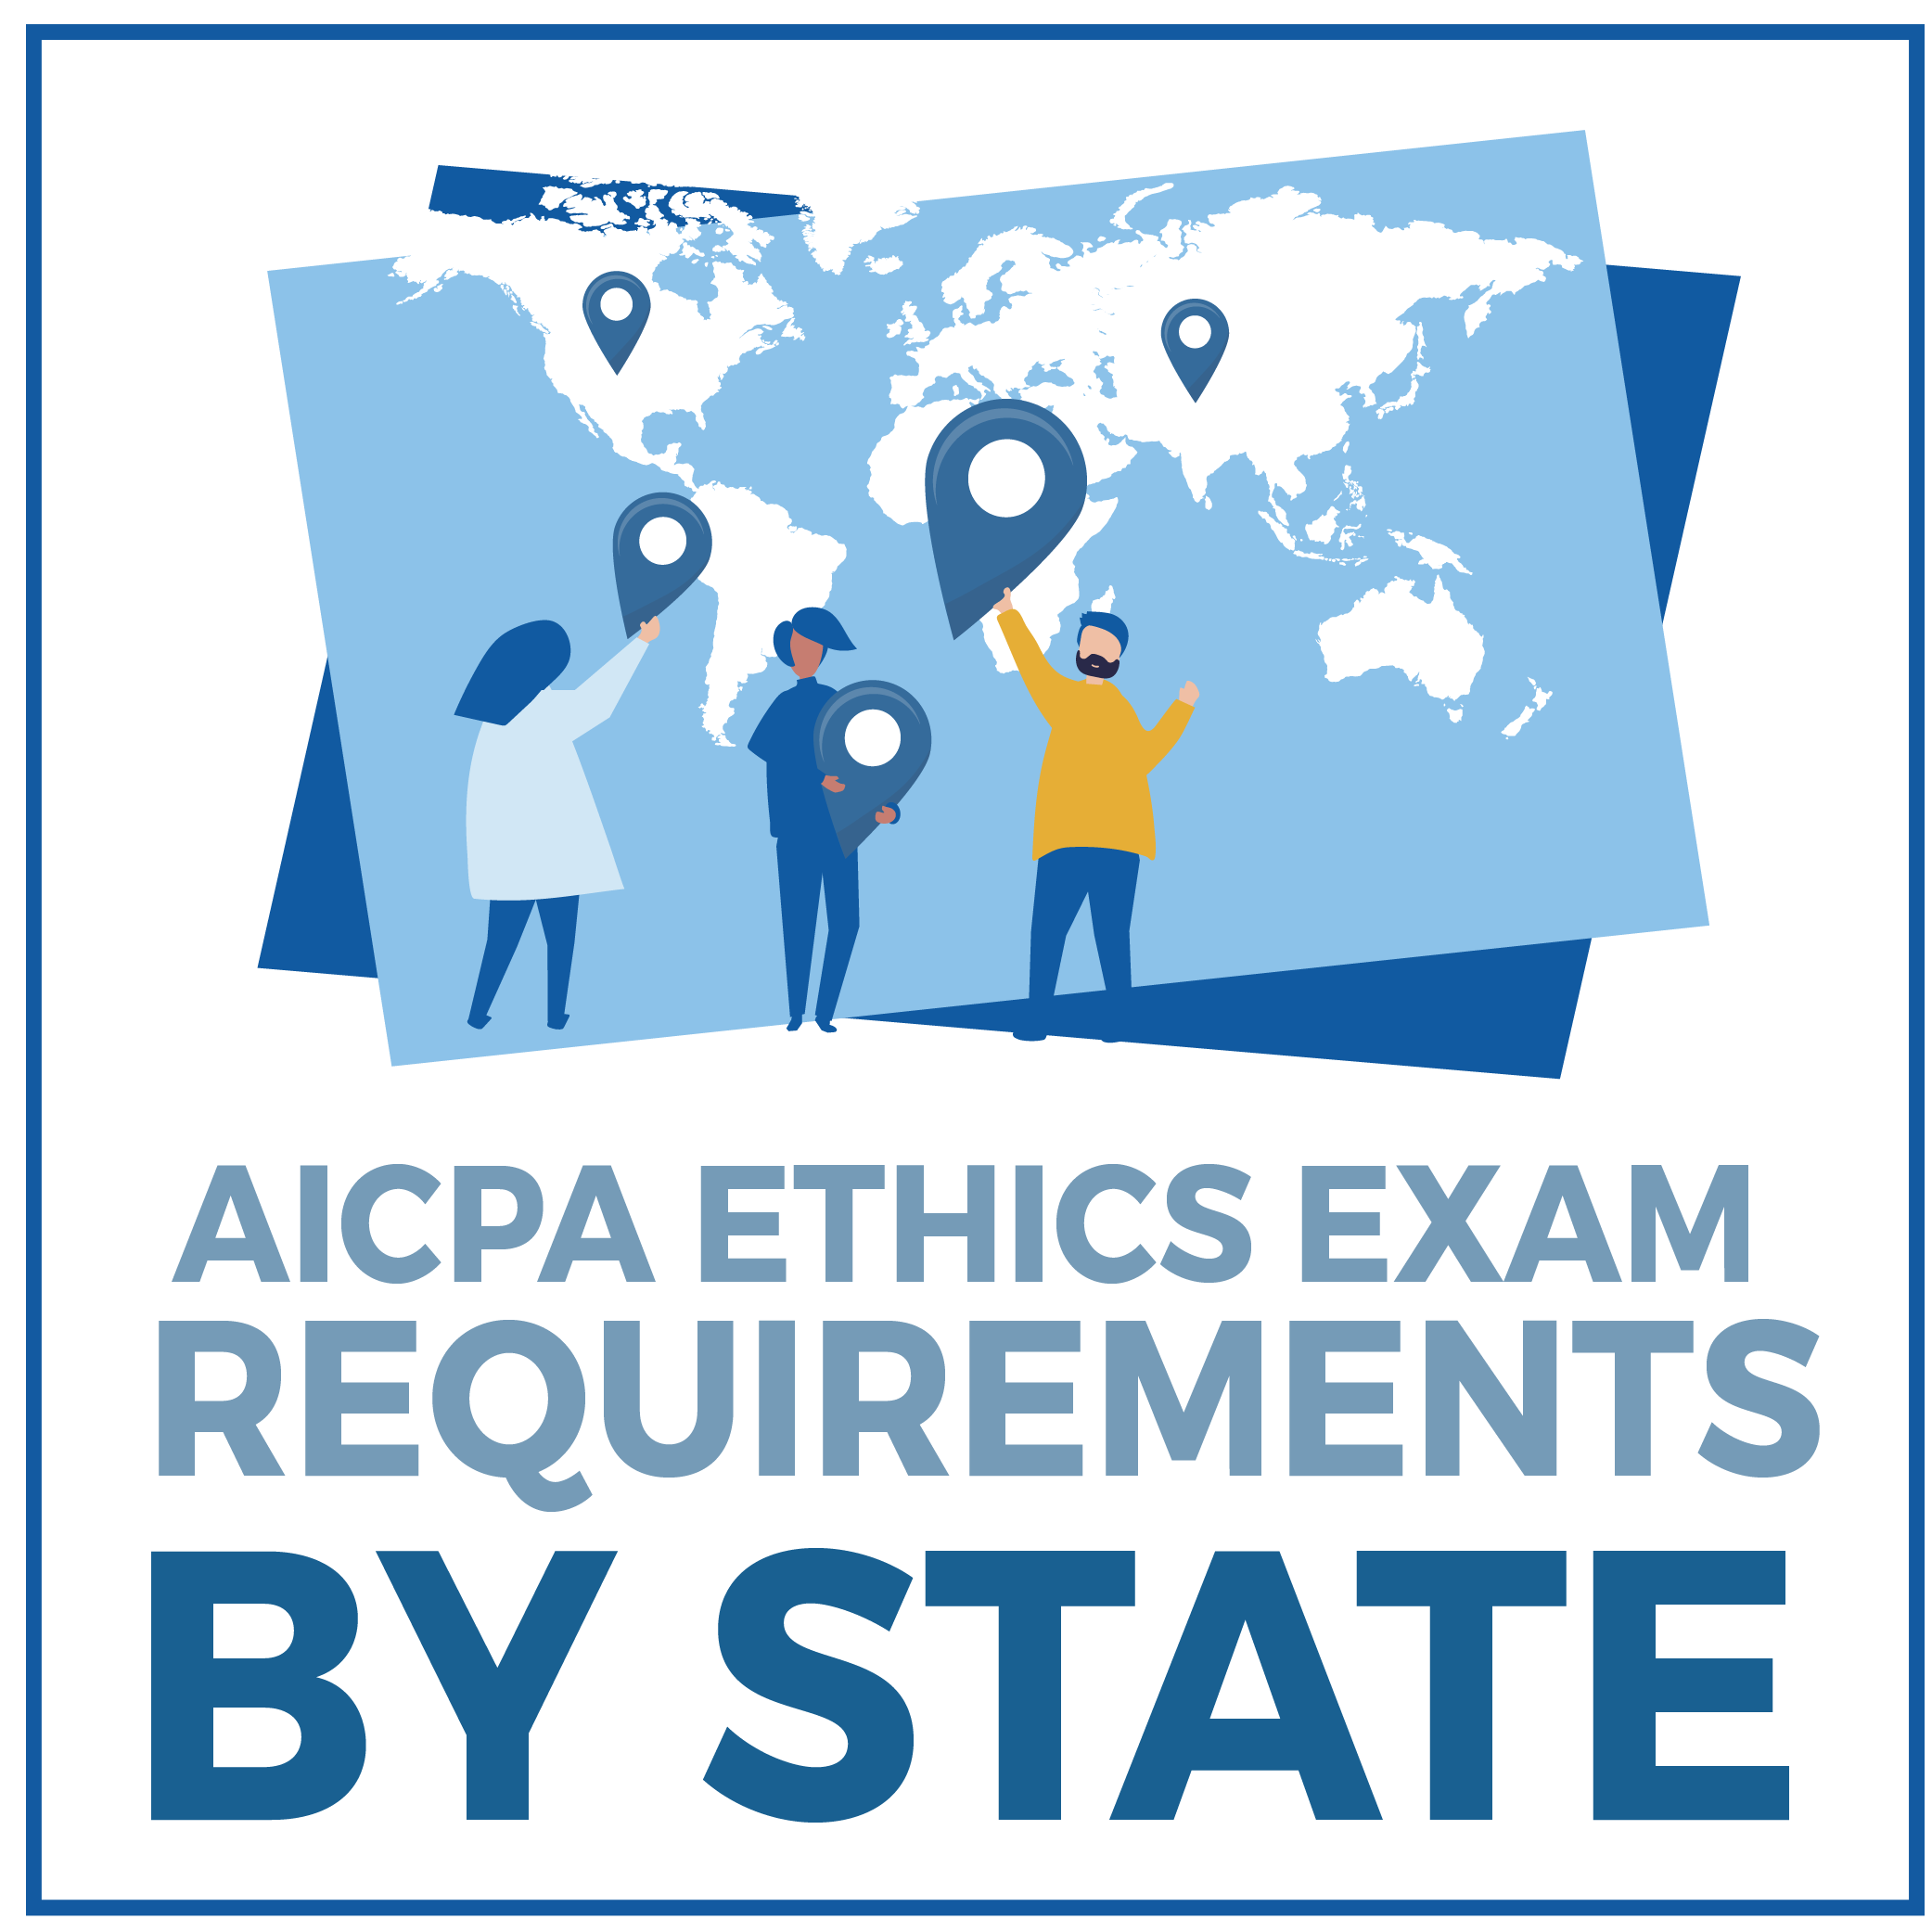 AICPA Ethics Exam Requirements by State